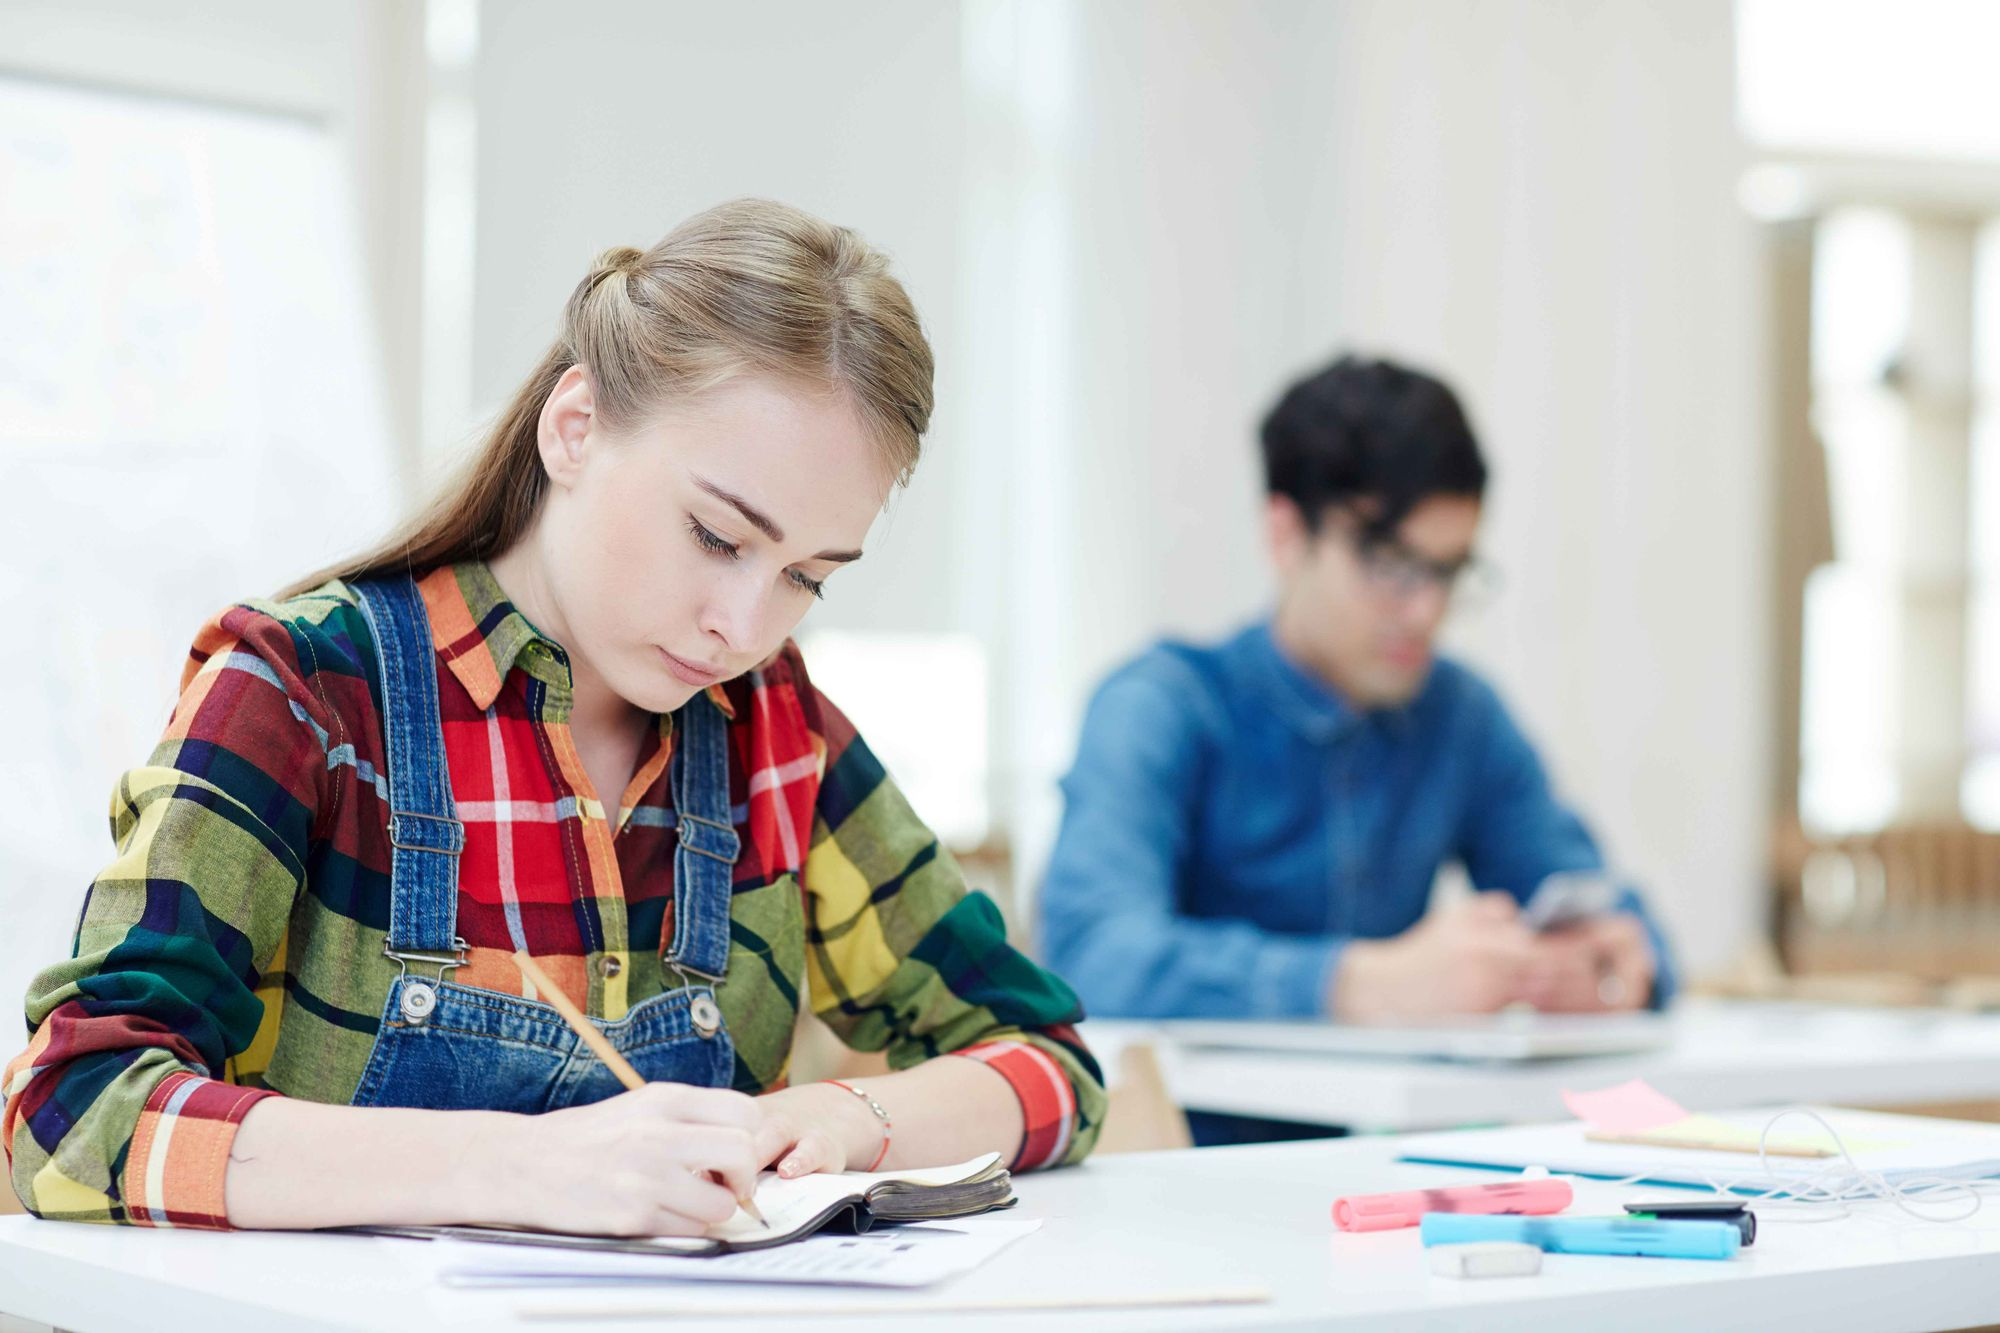 Coping with the uncertainty around examination and the role of teachers in helping students